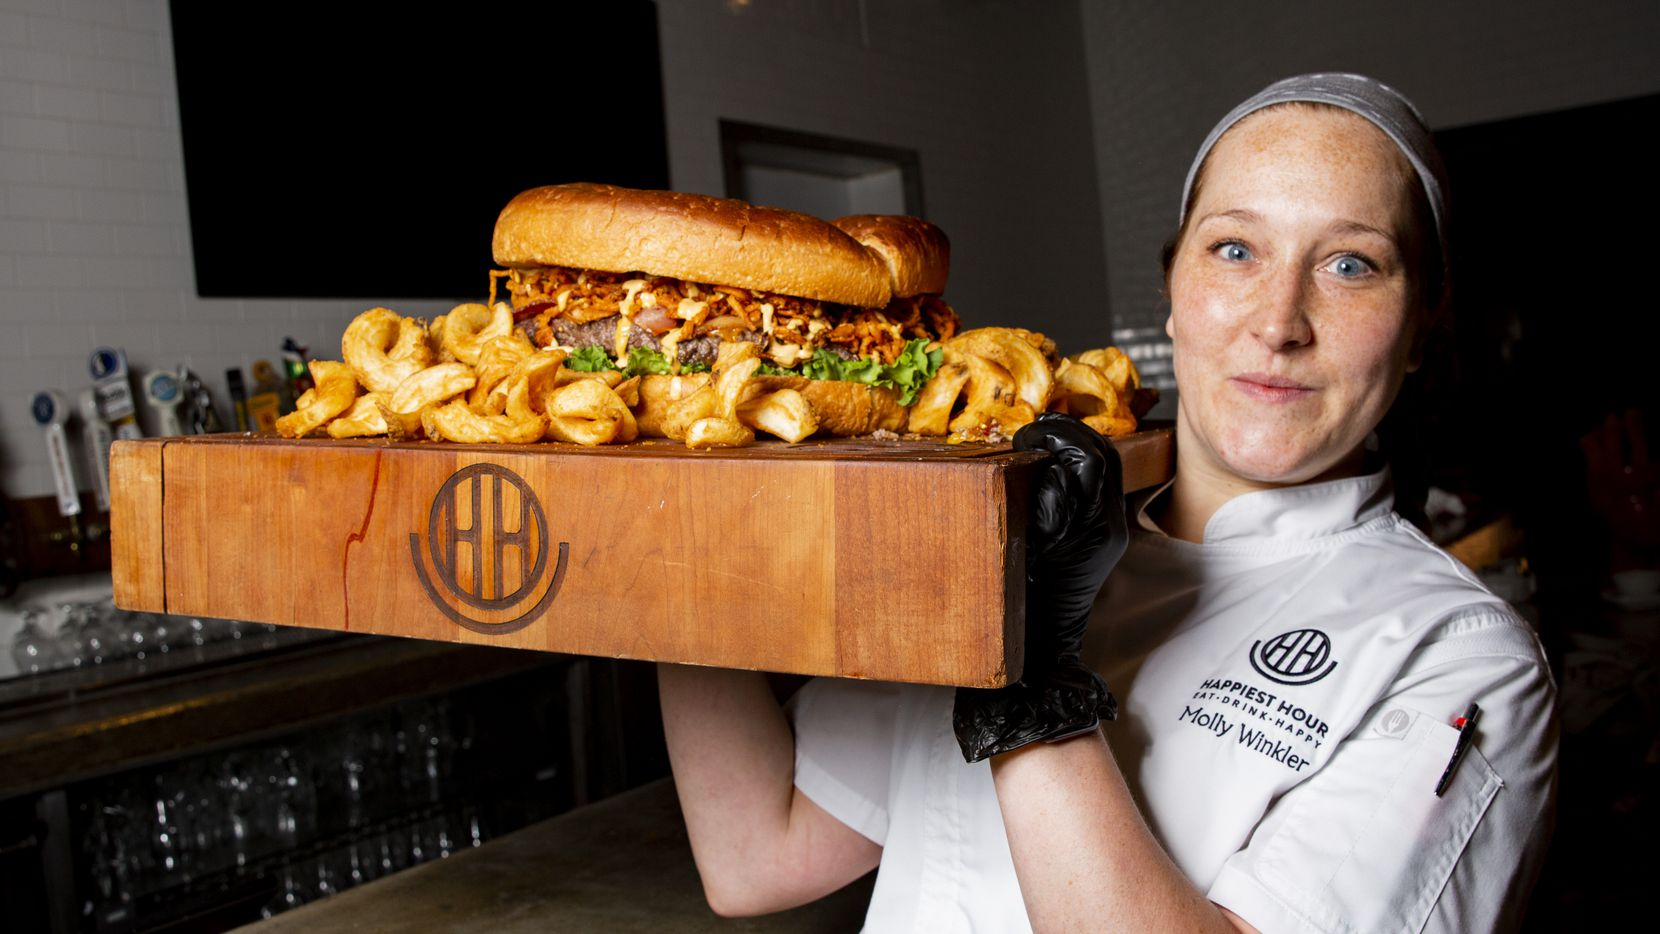 Executive chef Molly Winkler carries the 5-pound Big Happy Burger and 5 pounds of fries at Happiest Hour in Dallas. This cutting board is very heavy.